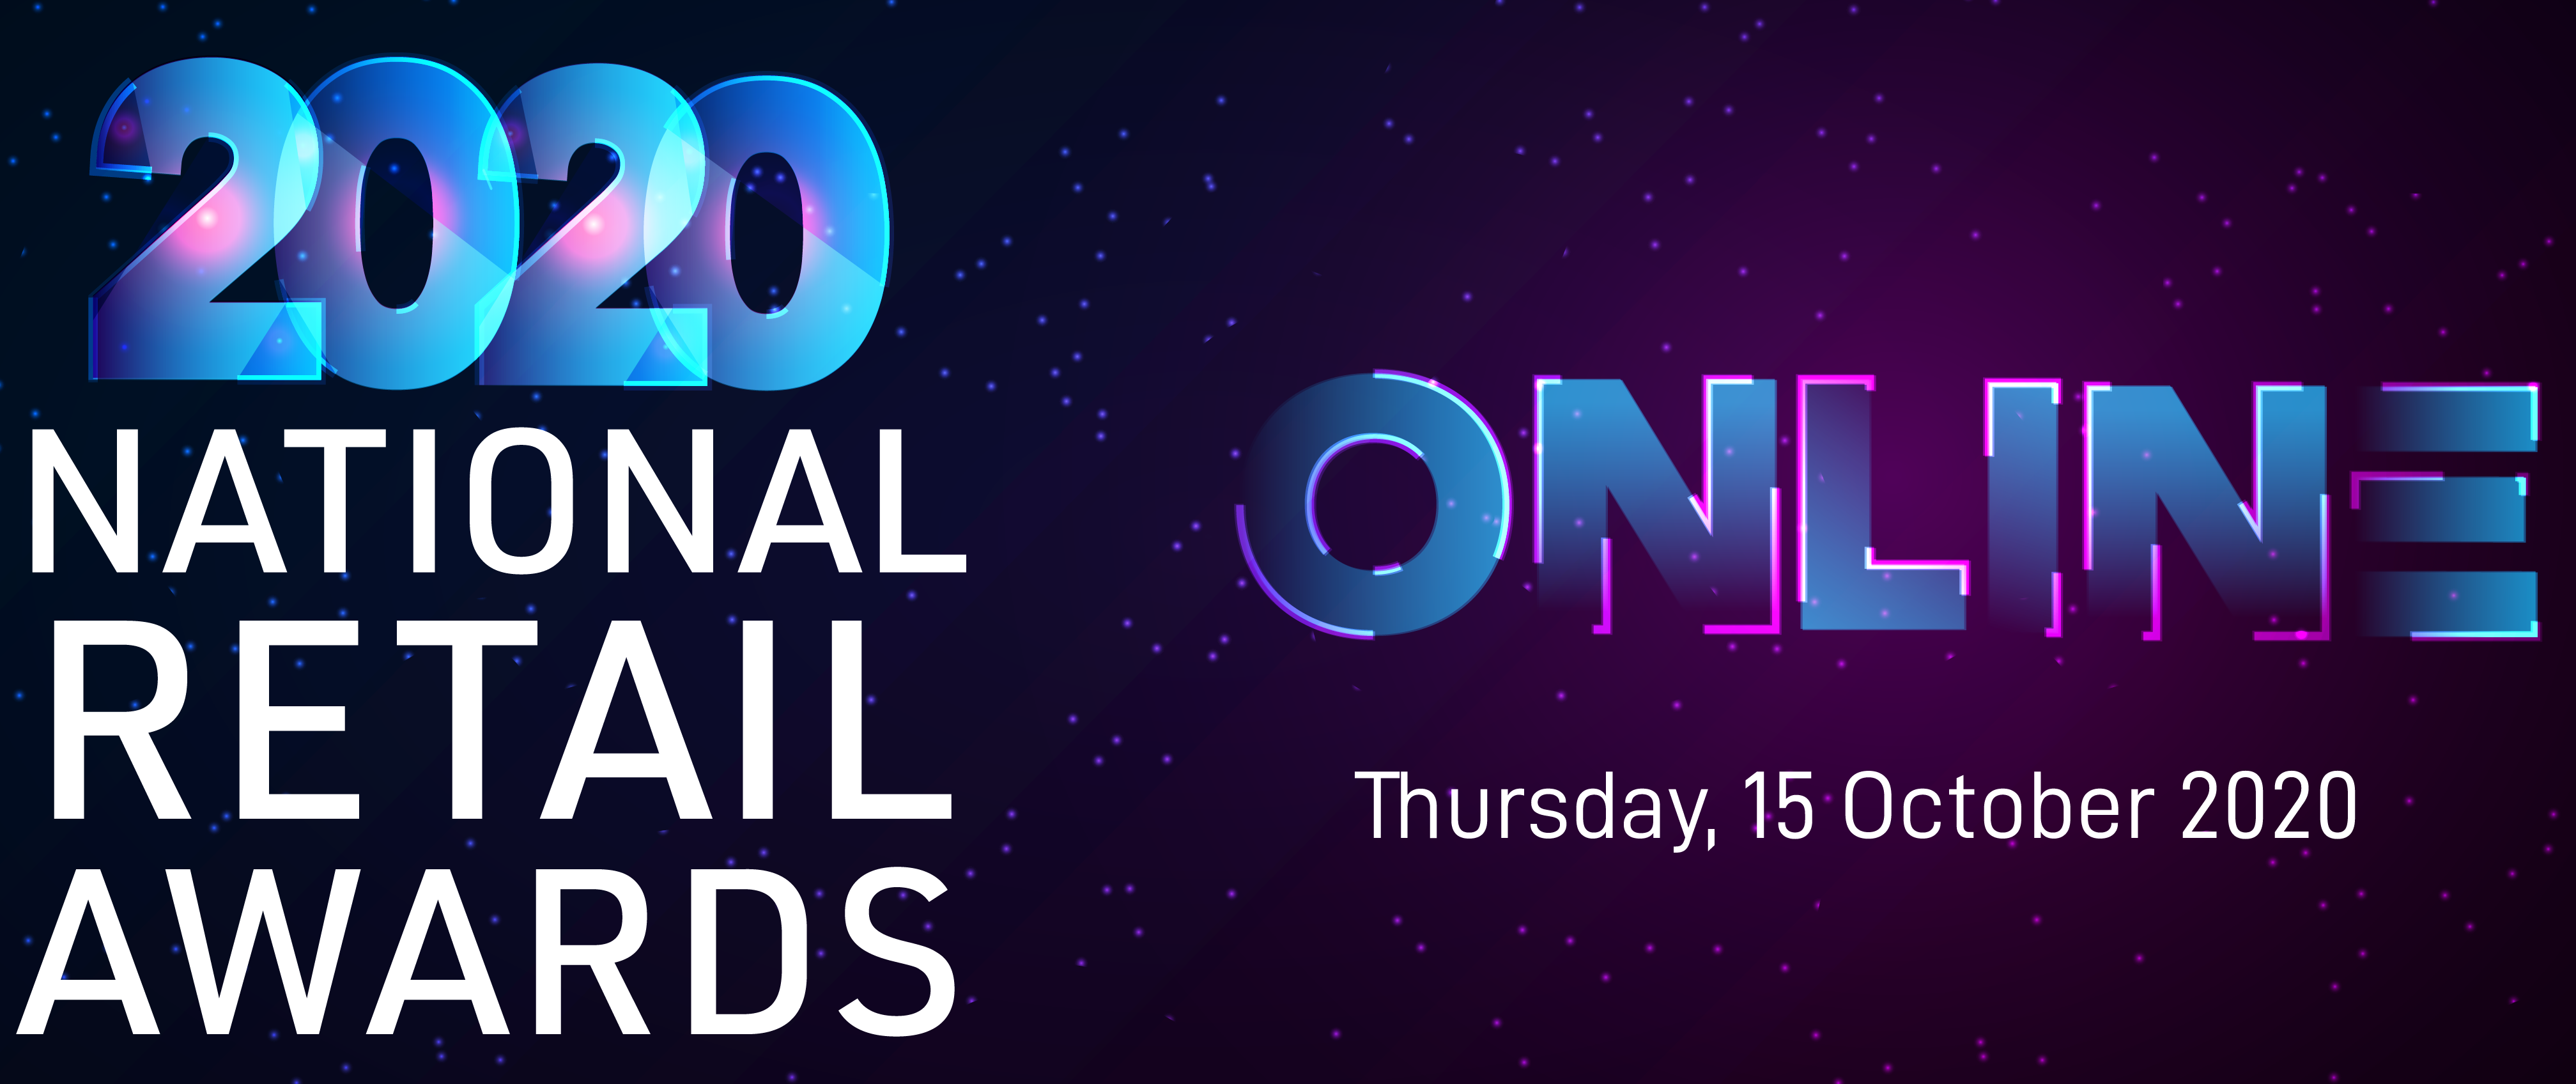 2020 National Retail Awards Online